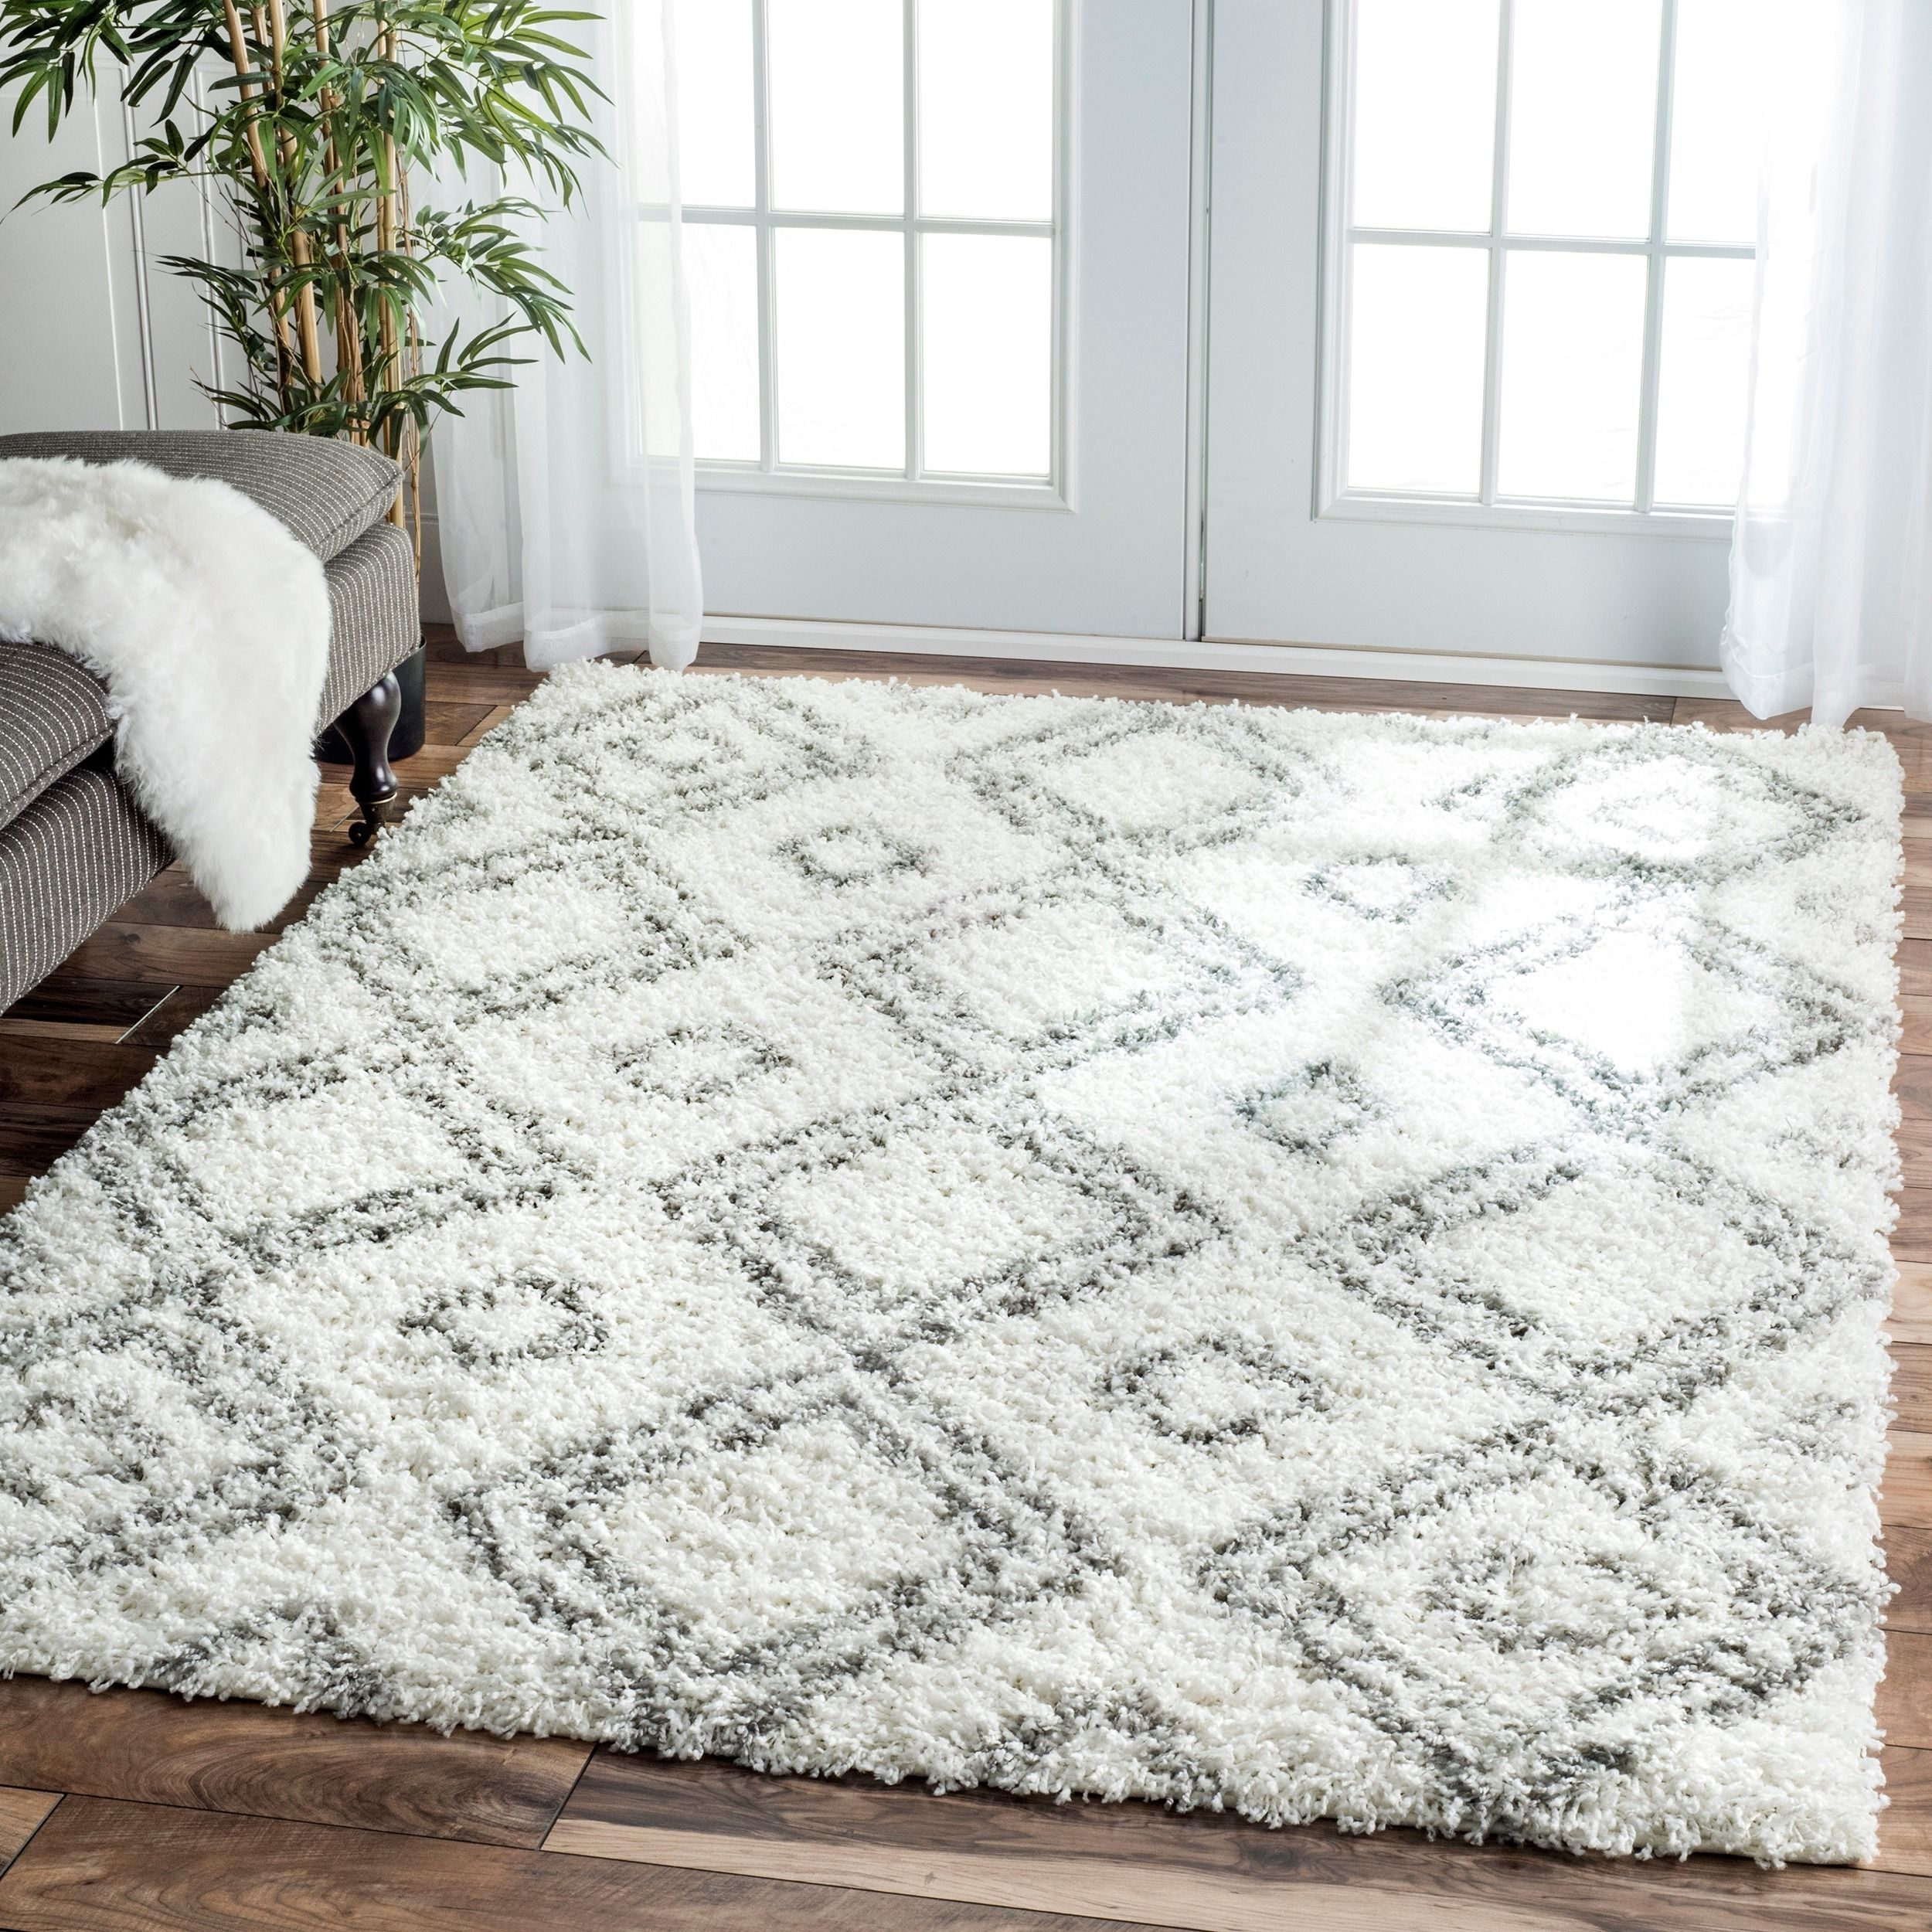 White Contemporary Area Rug With Ornament | Contemporary Area Rugs ...